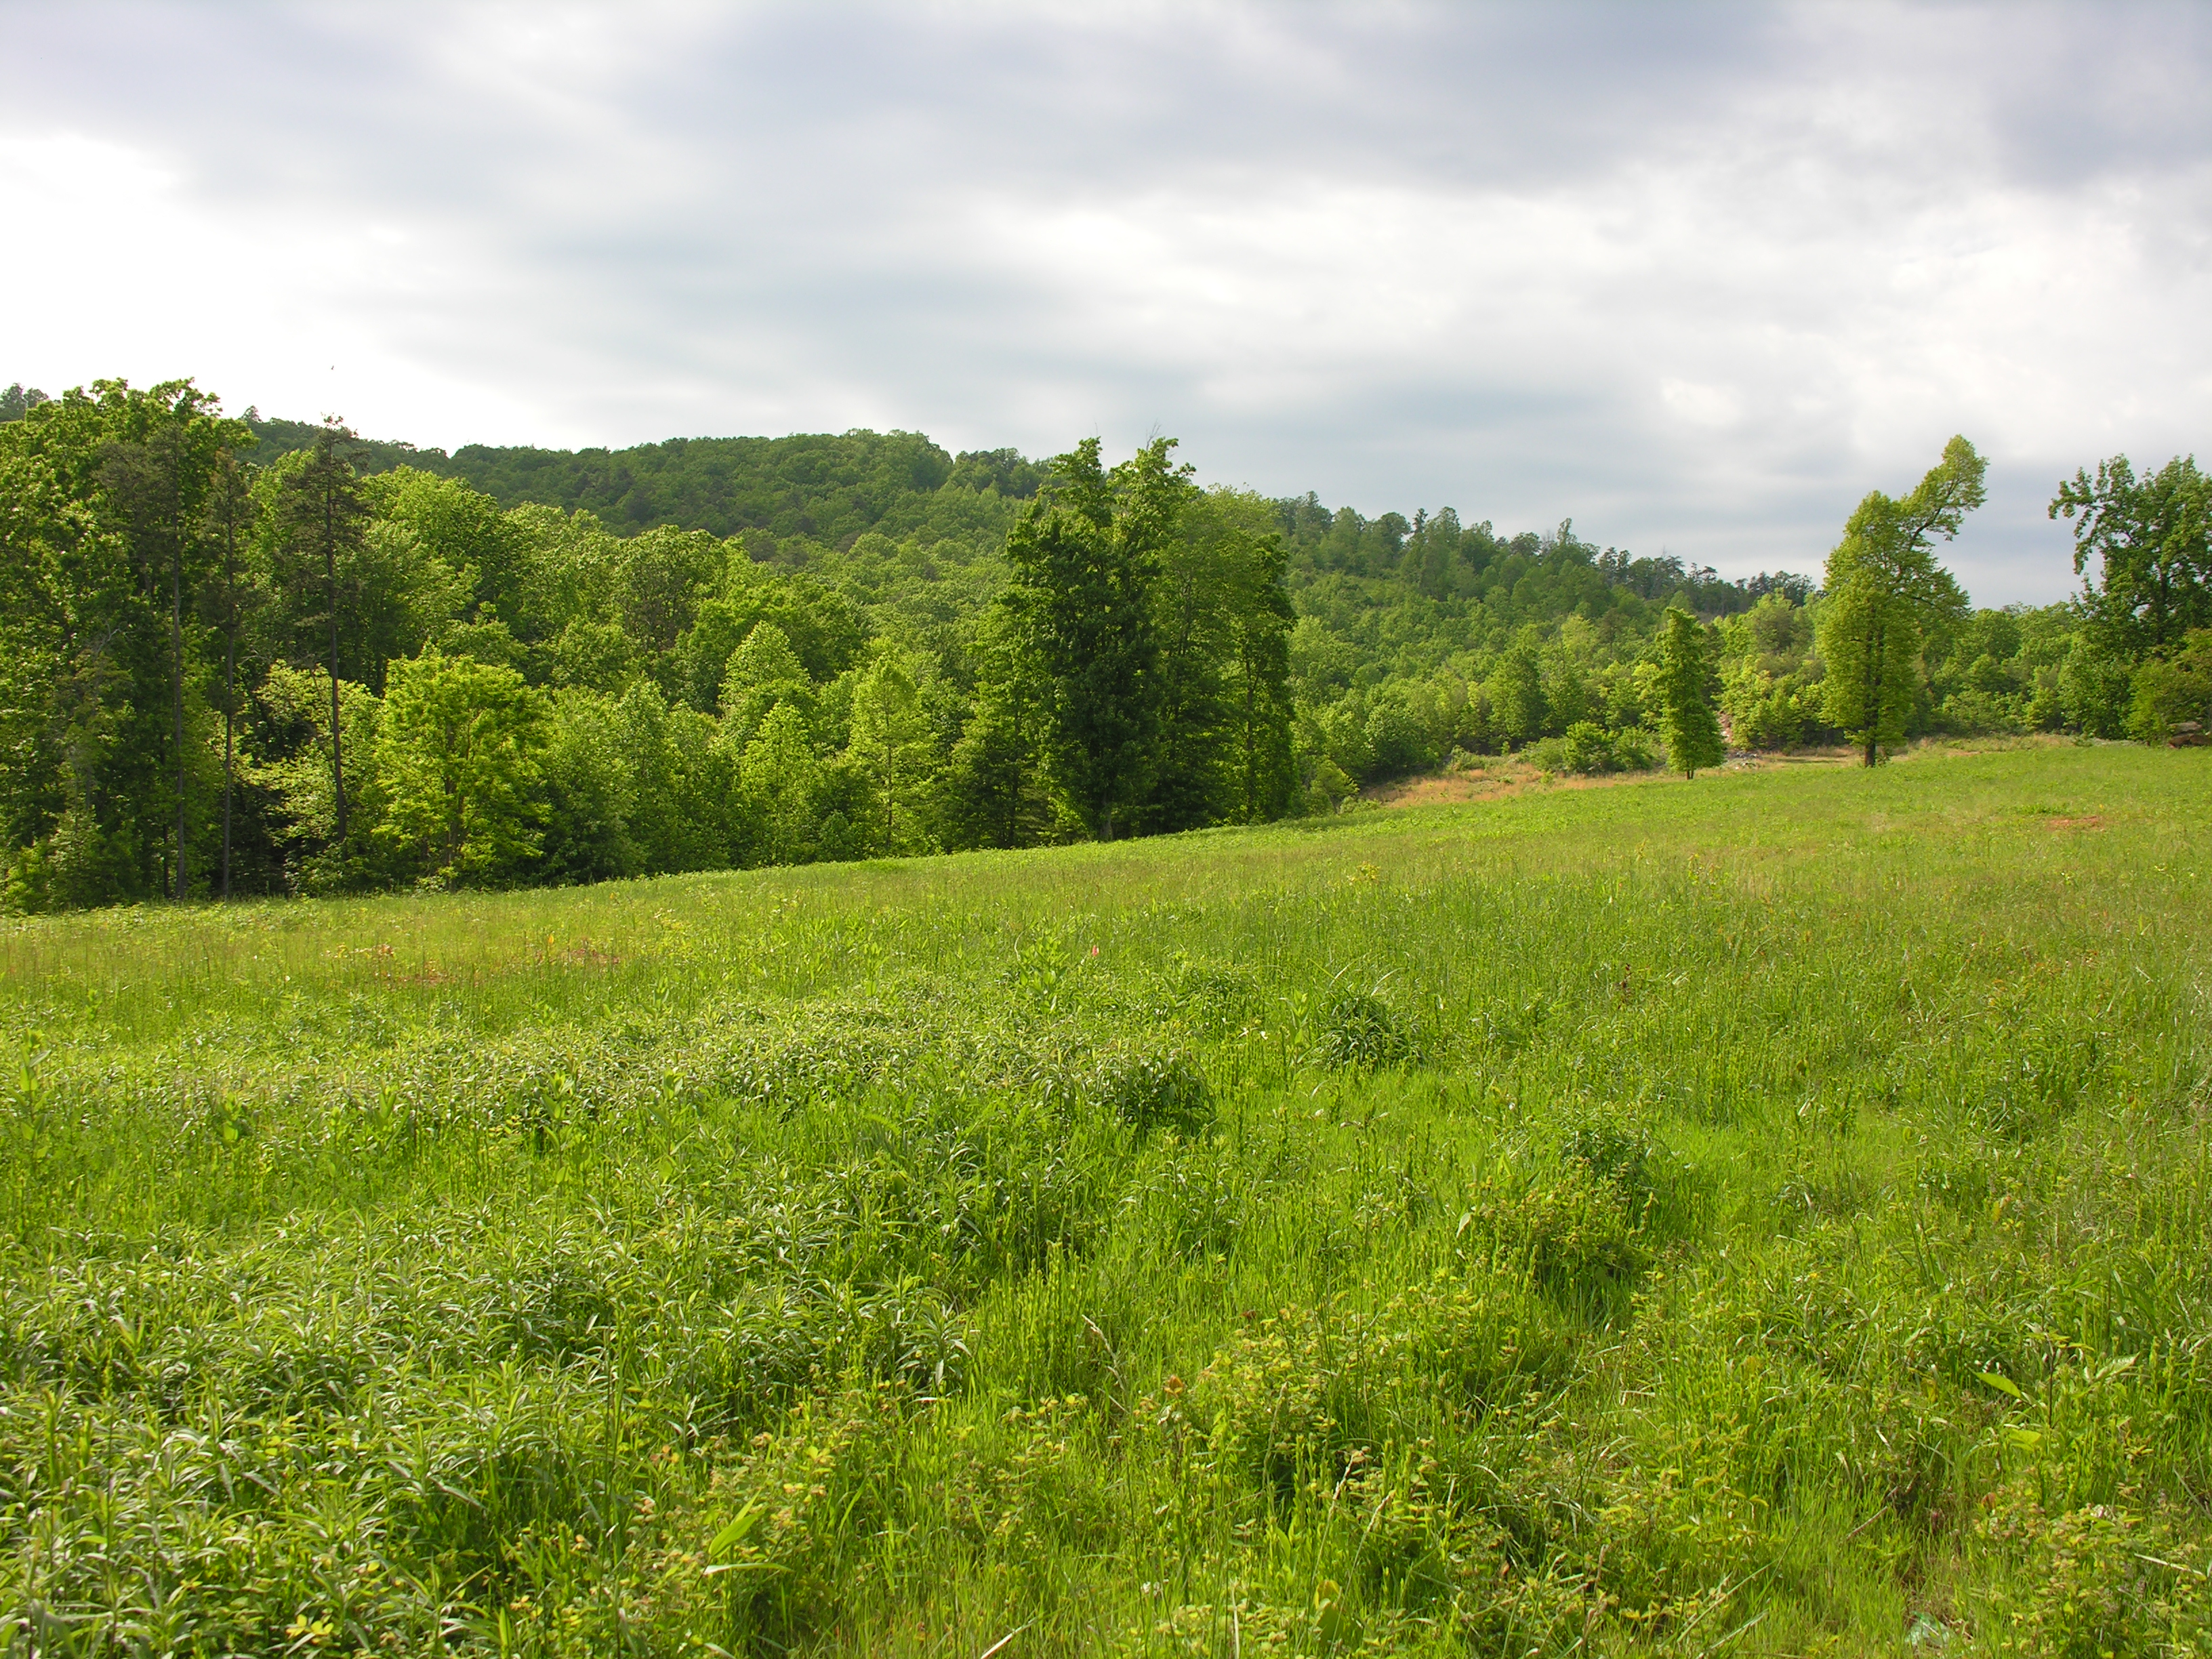 Land in Franklin County, Sontag Ridge, Lot #4